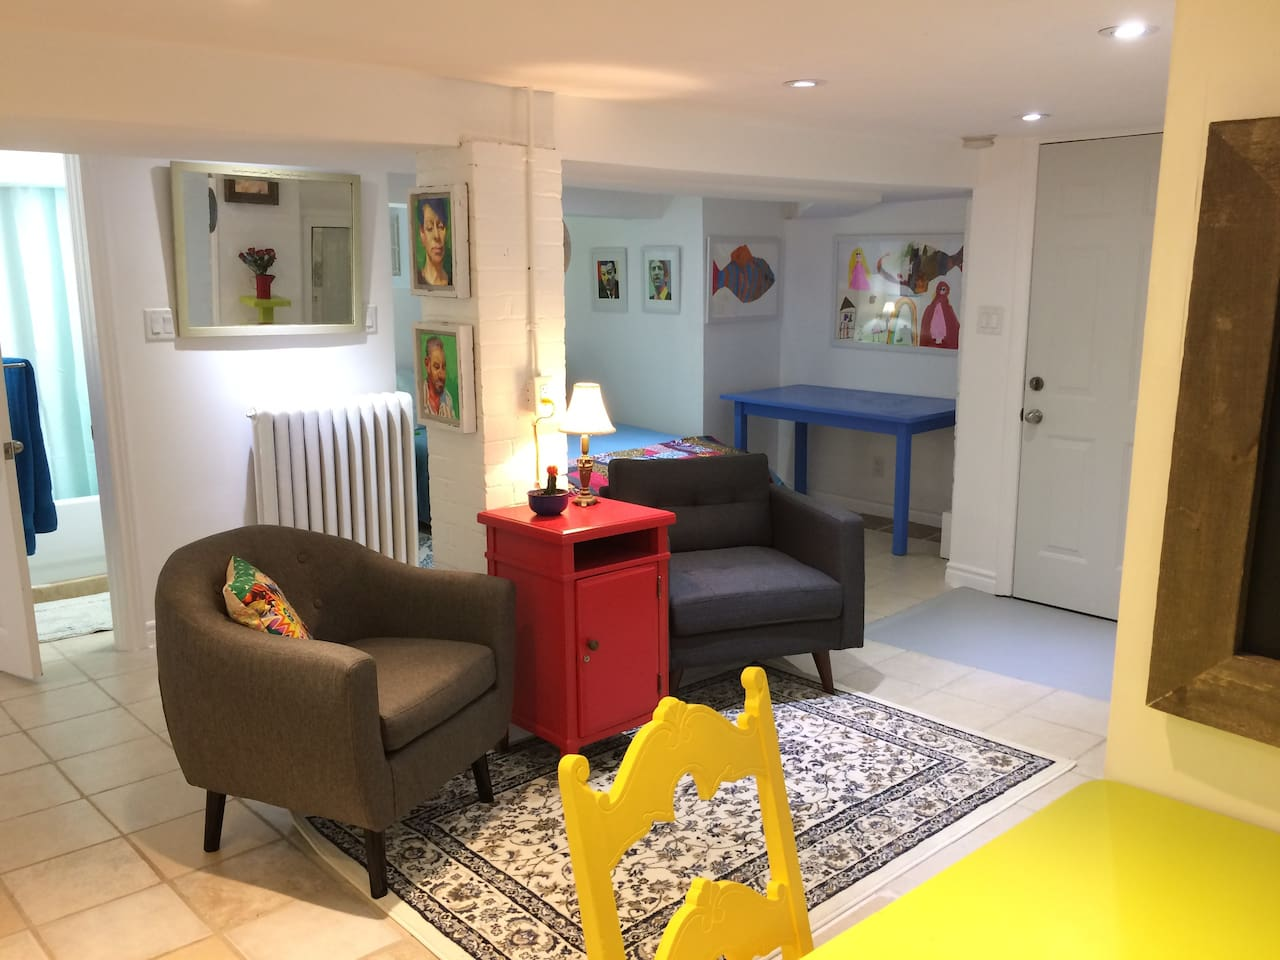 Lots of colour, beautiful artwork and 2 large sofa chairs to relax,  in the heart of the city after a walk through nearby Gage Park. This apartment has it's own thermostat and vintage cast iron radiator to warm up on chilly nights.